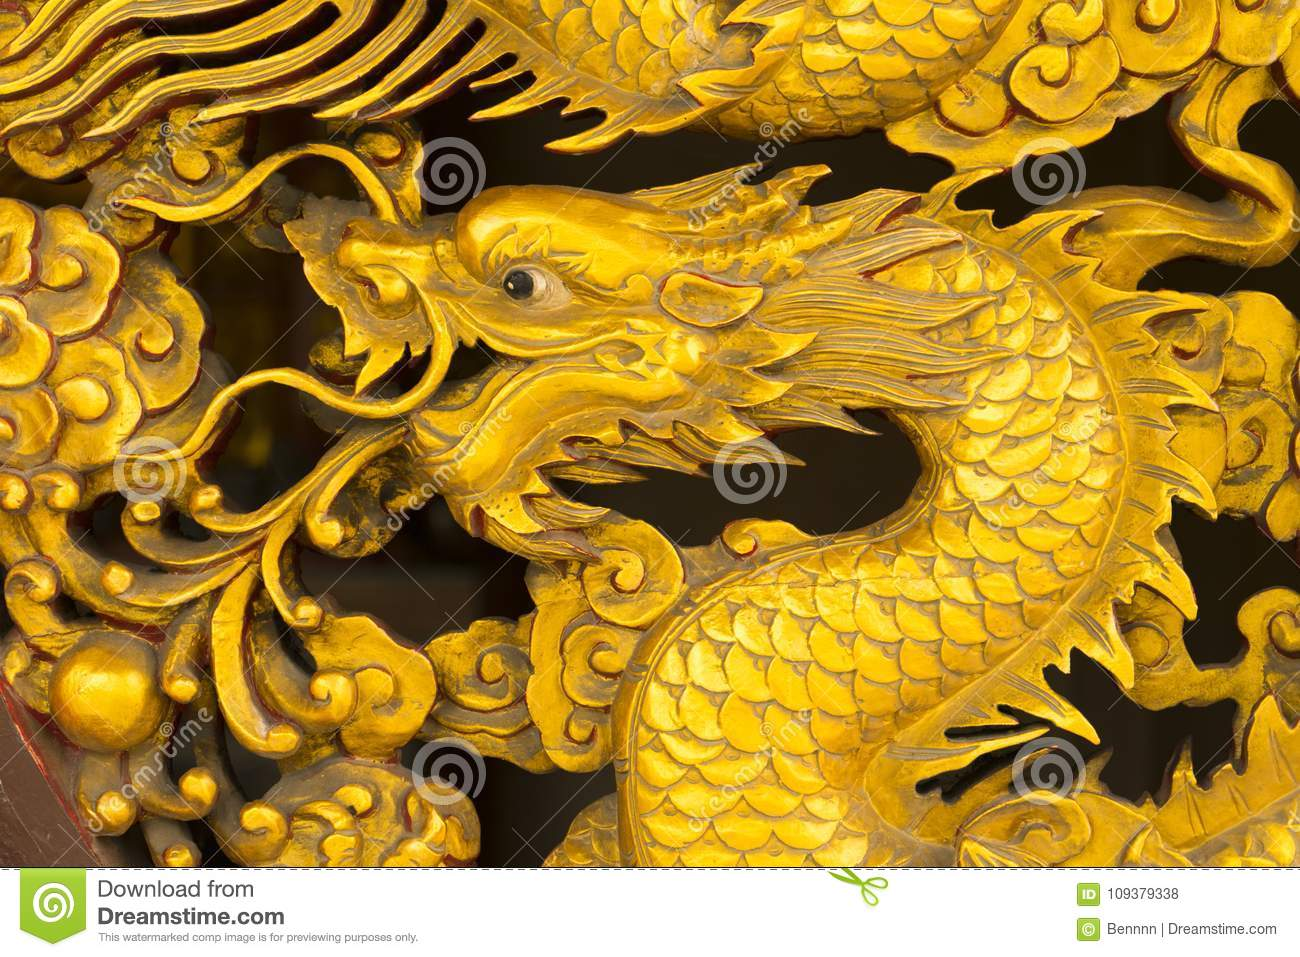 Golden dragon buddhism statistics about steroids in sports